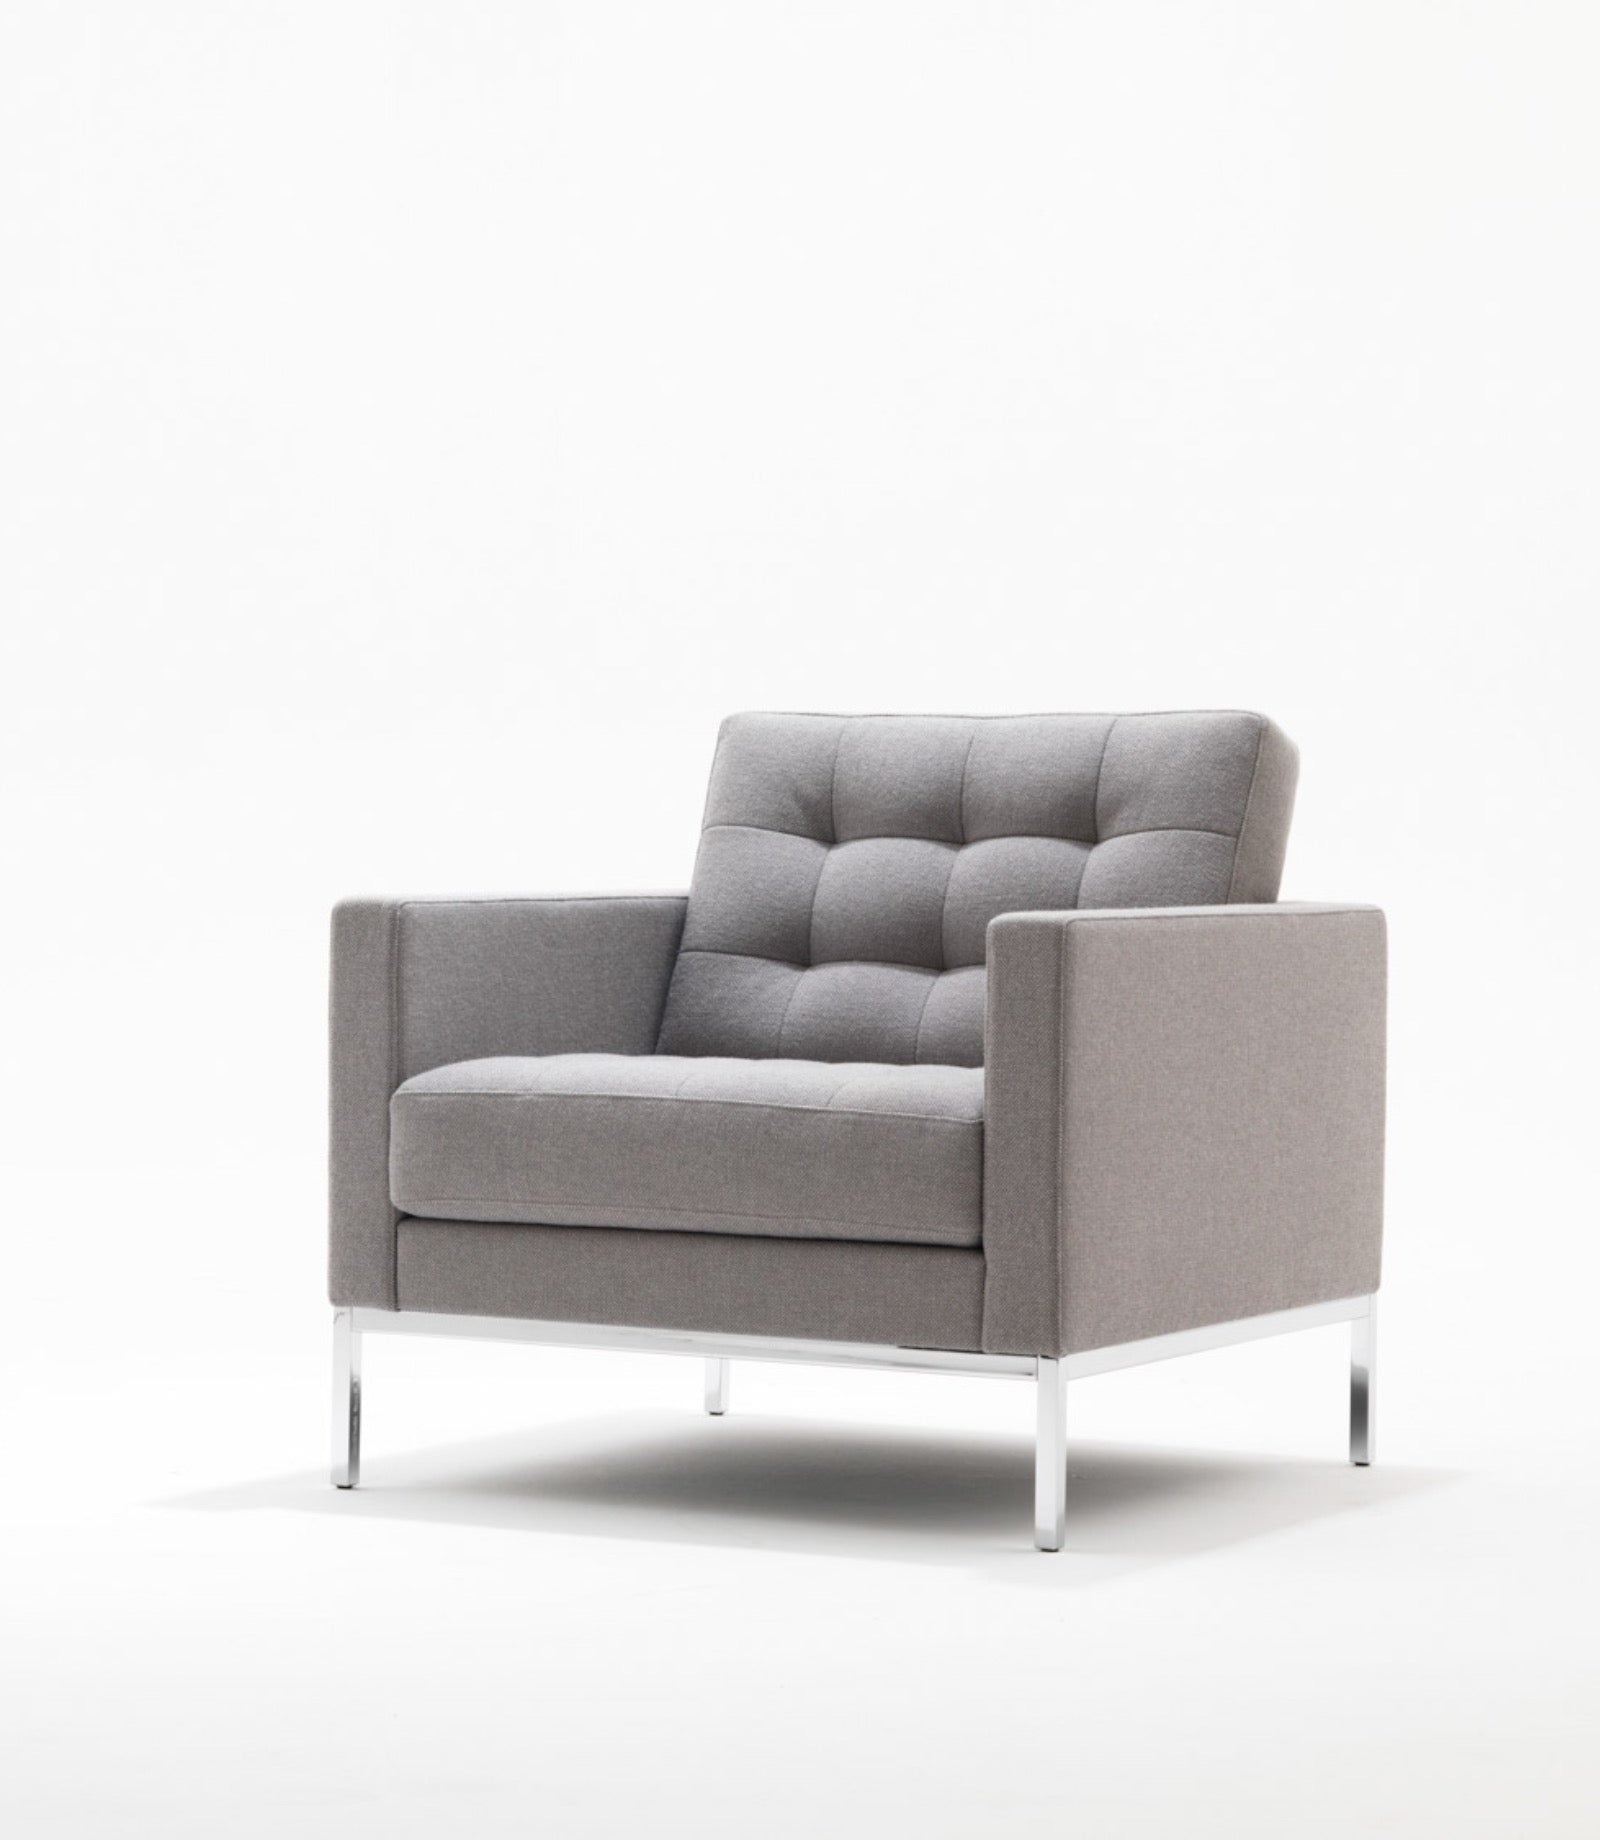 Florence Knoll™ Lounge Chair Relax